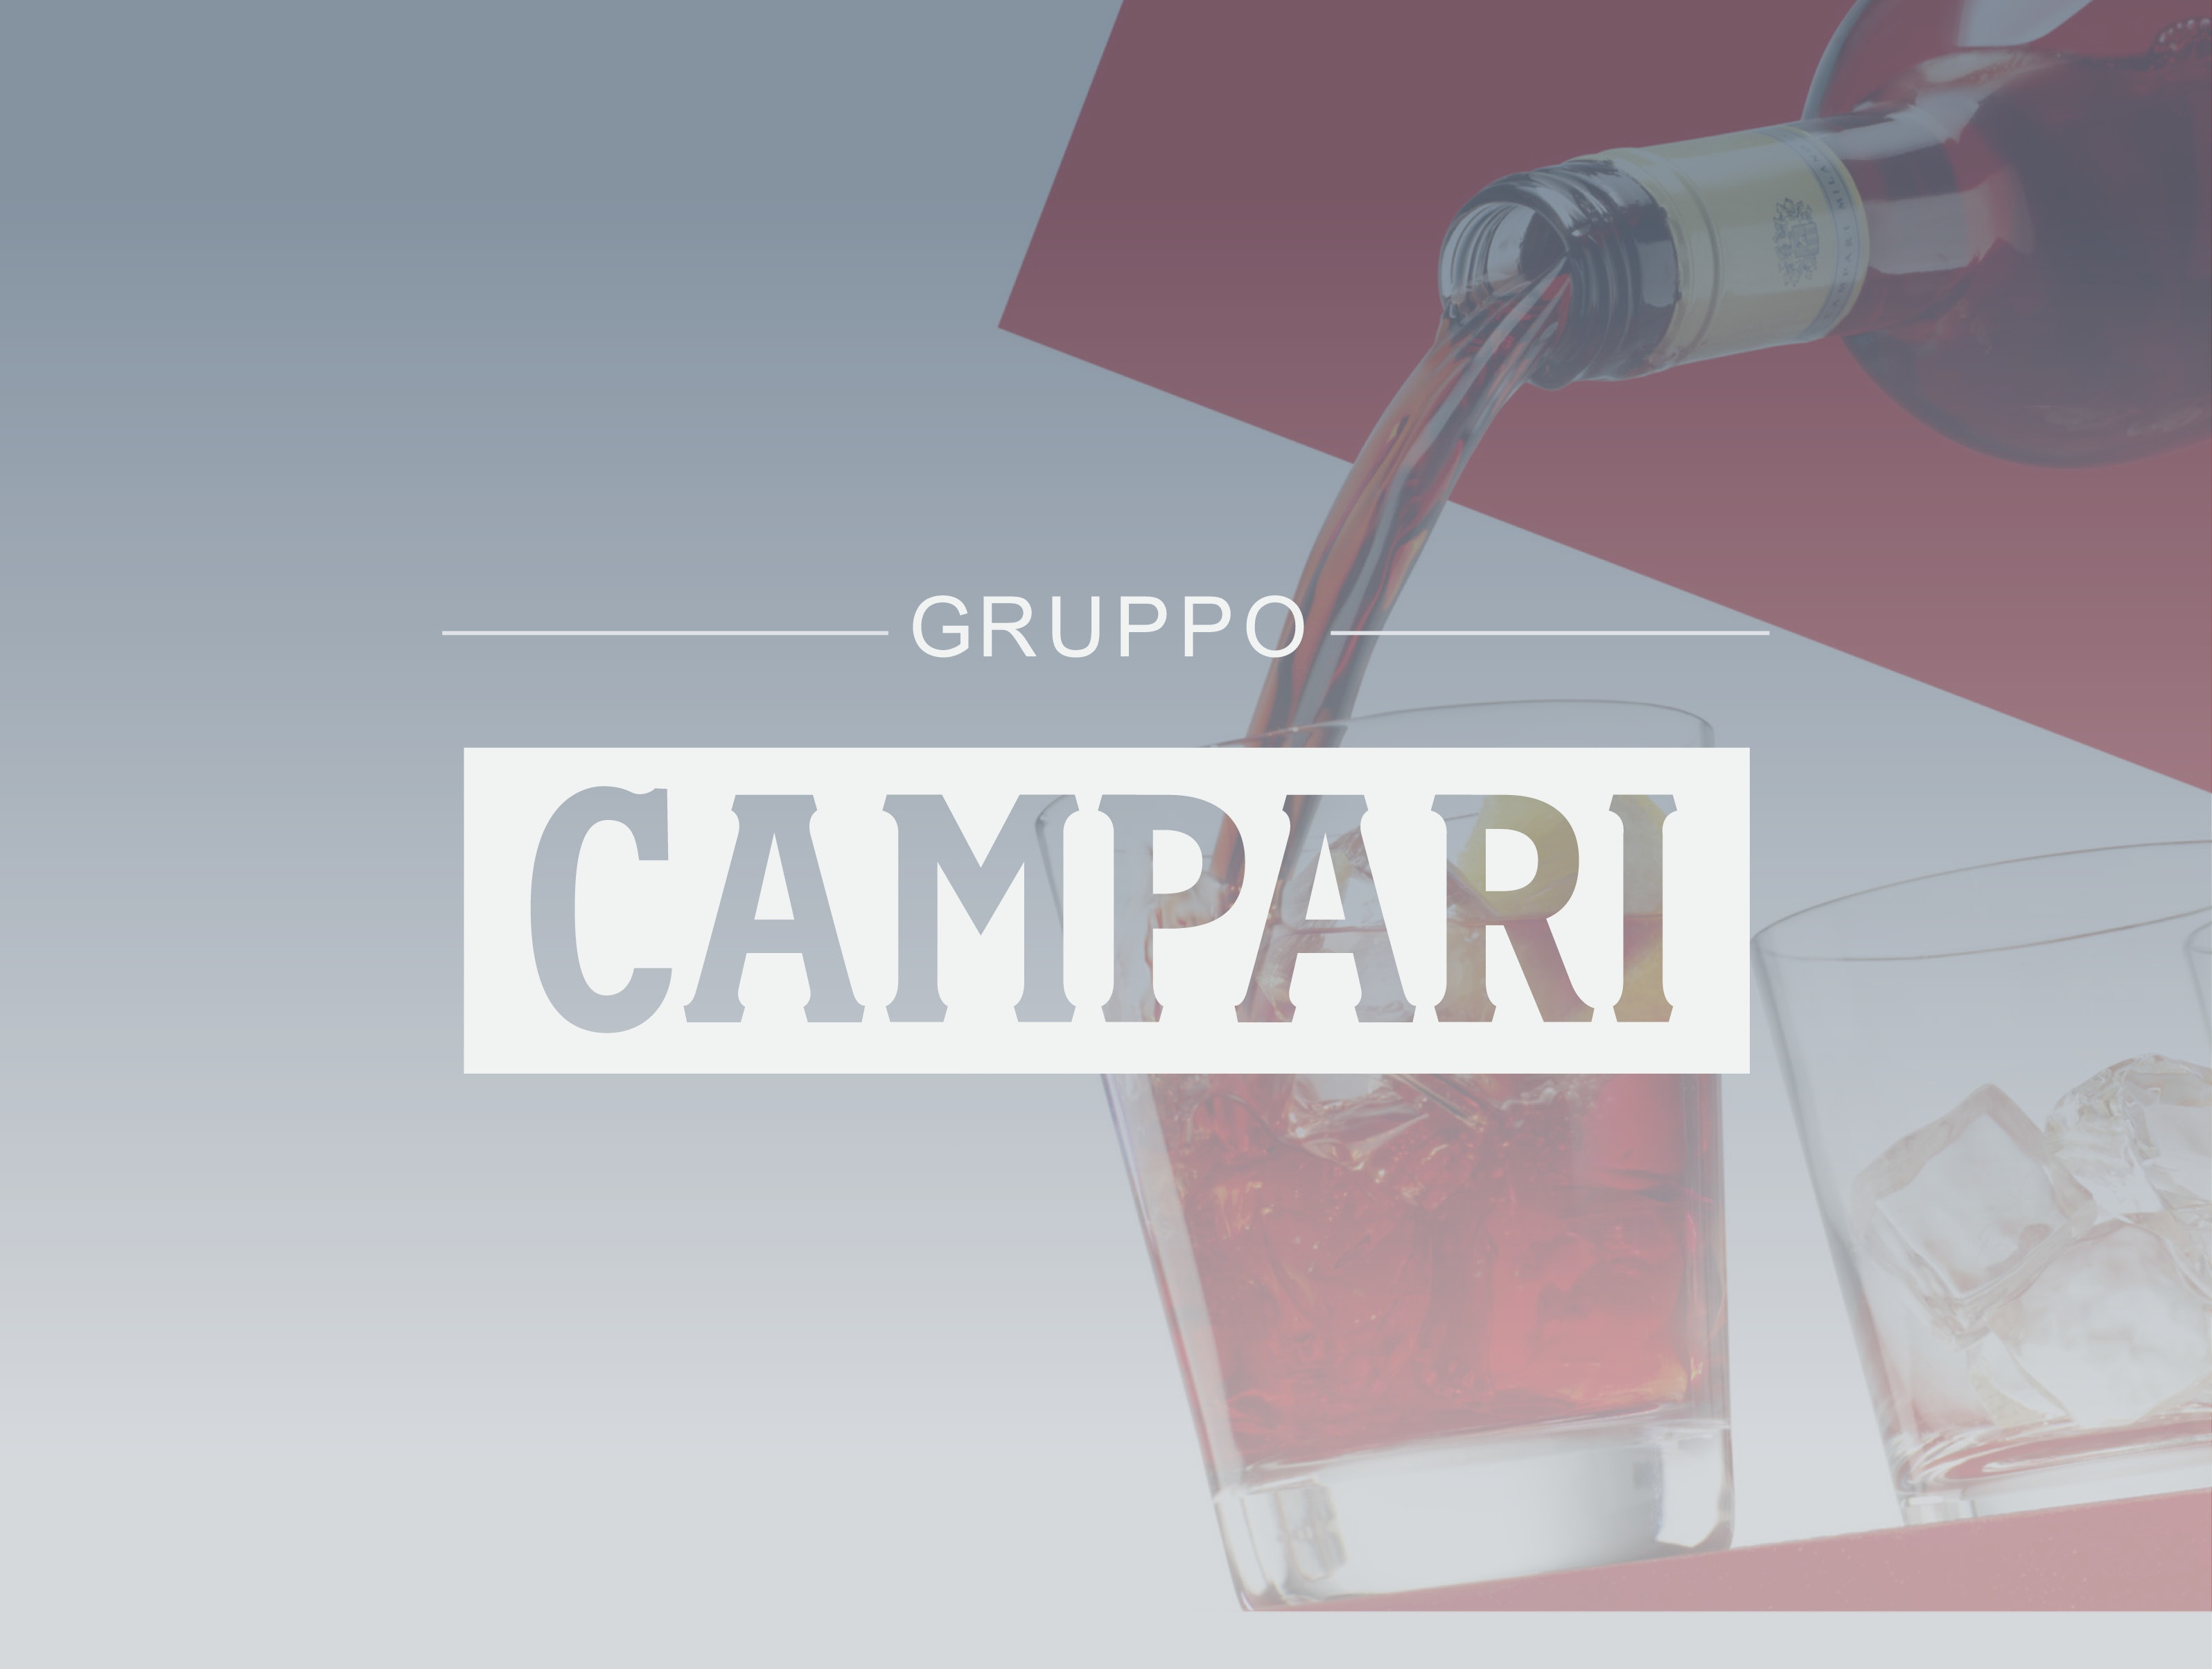 Campari-Customer Pages